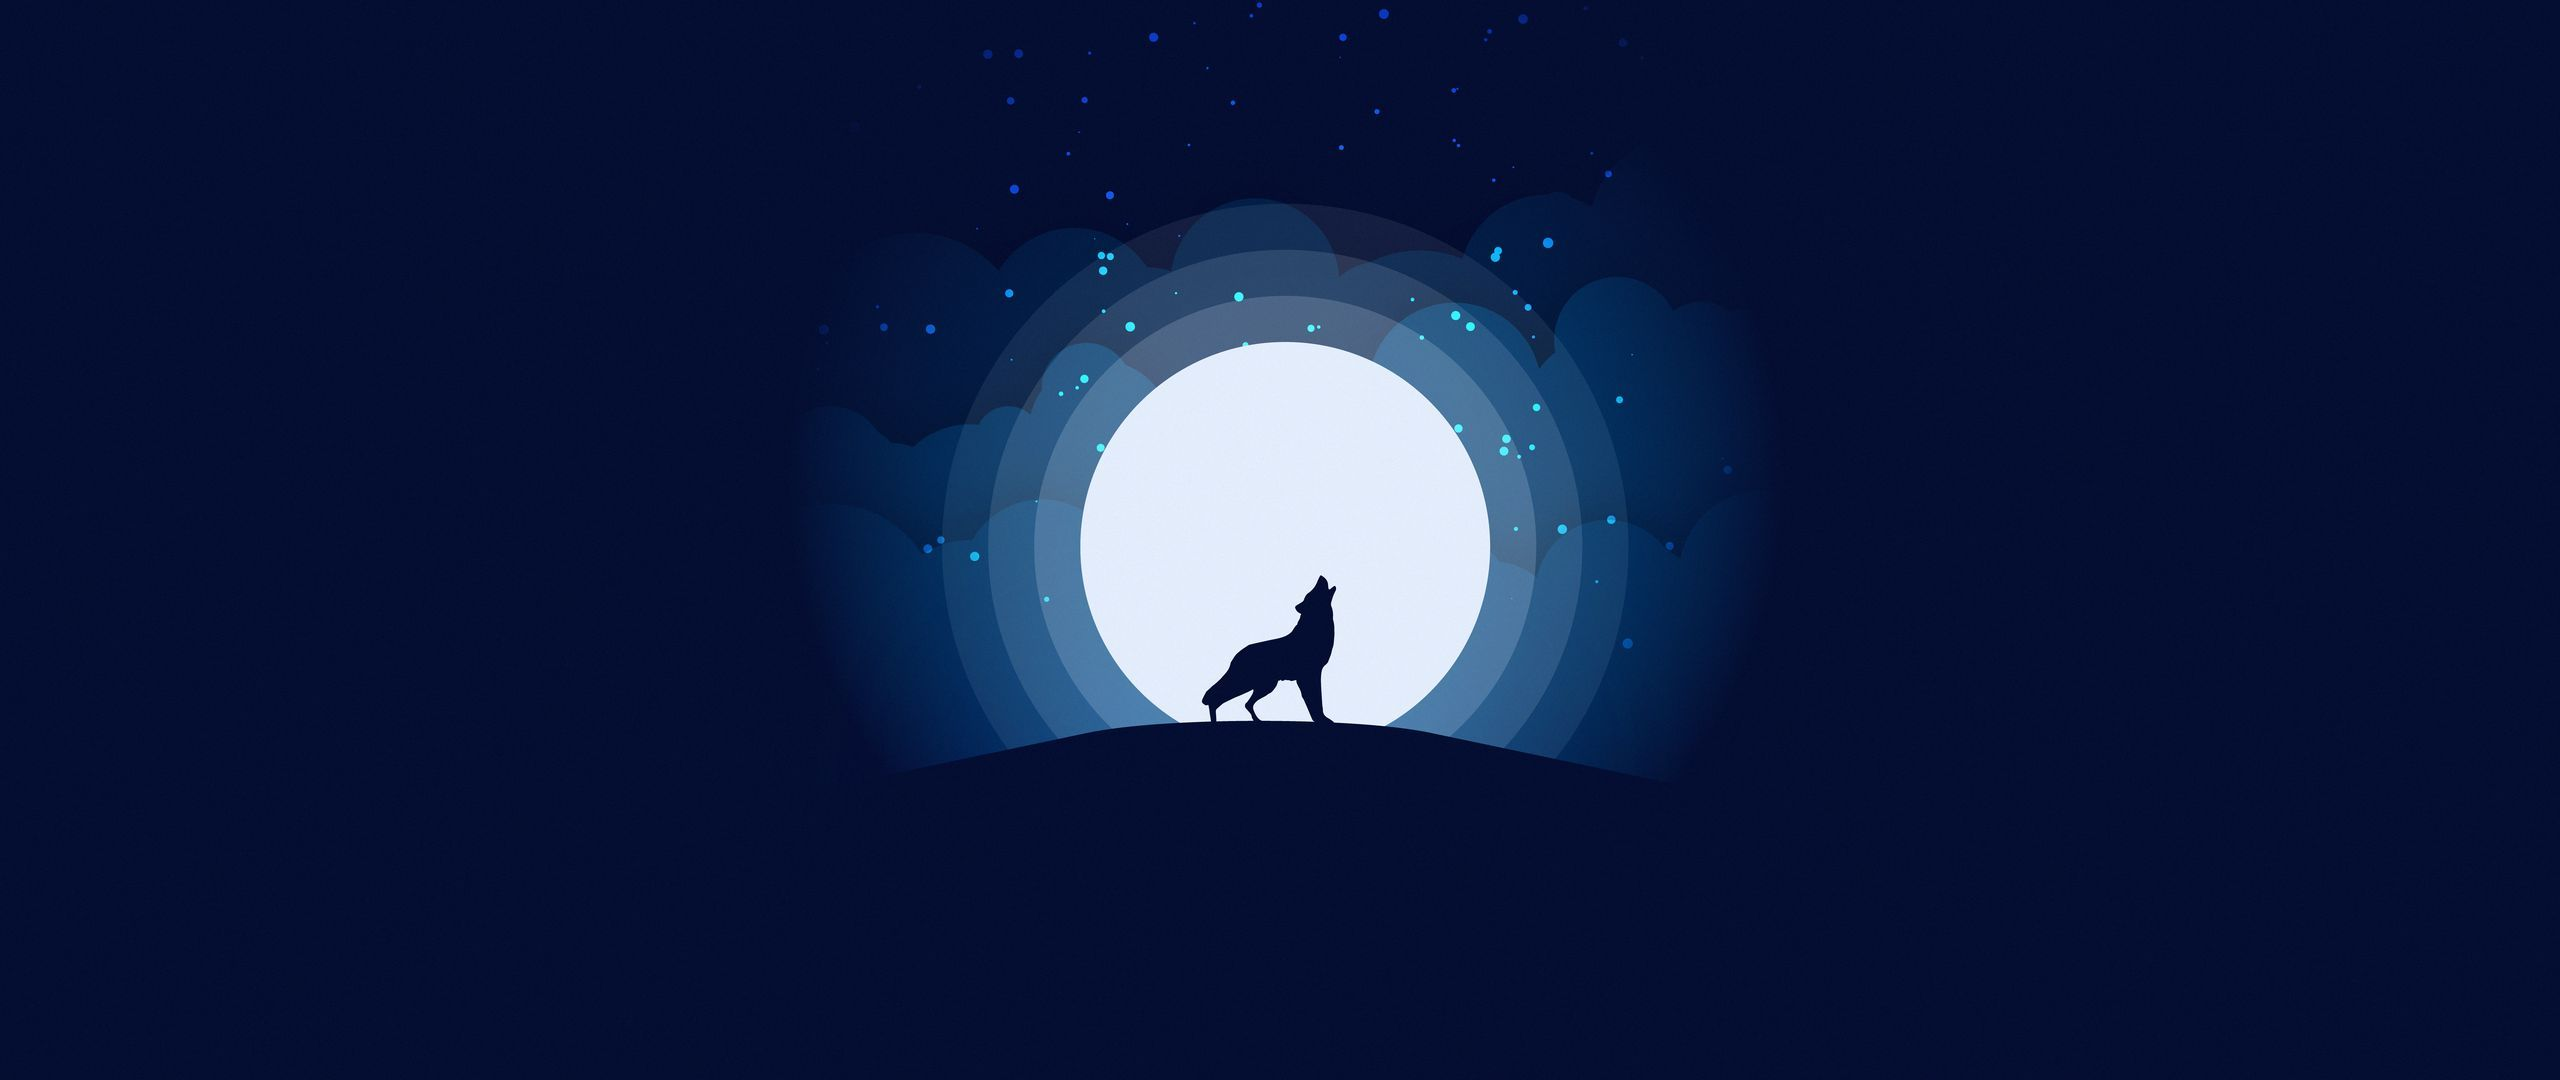 Download wallpapers 2560x1080 wolf, moon, howling, art, vector dual wide 1080p hd backgrounds